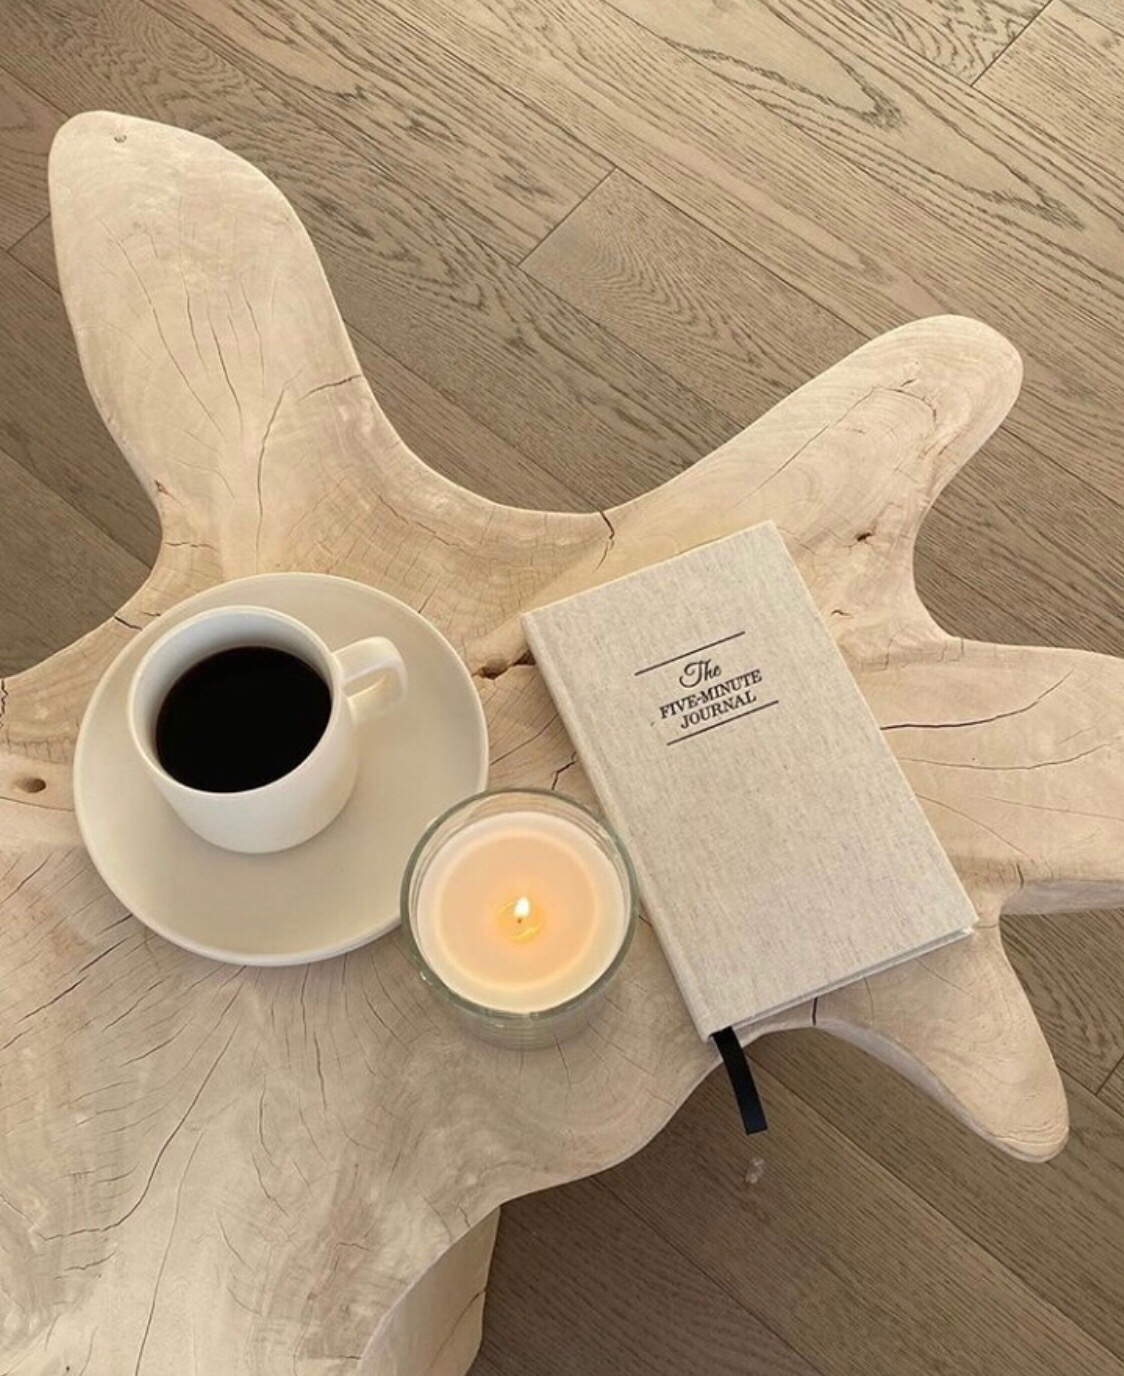 five minute journal flatlay on wooden table with coffee cup and candle